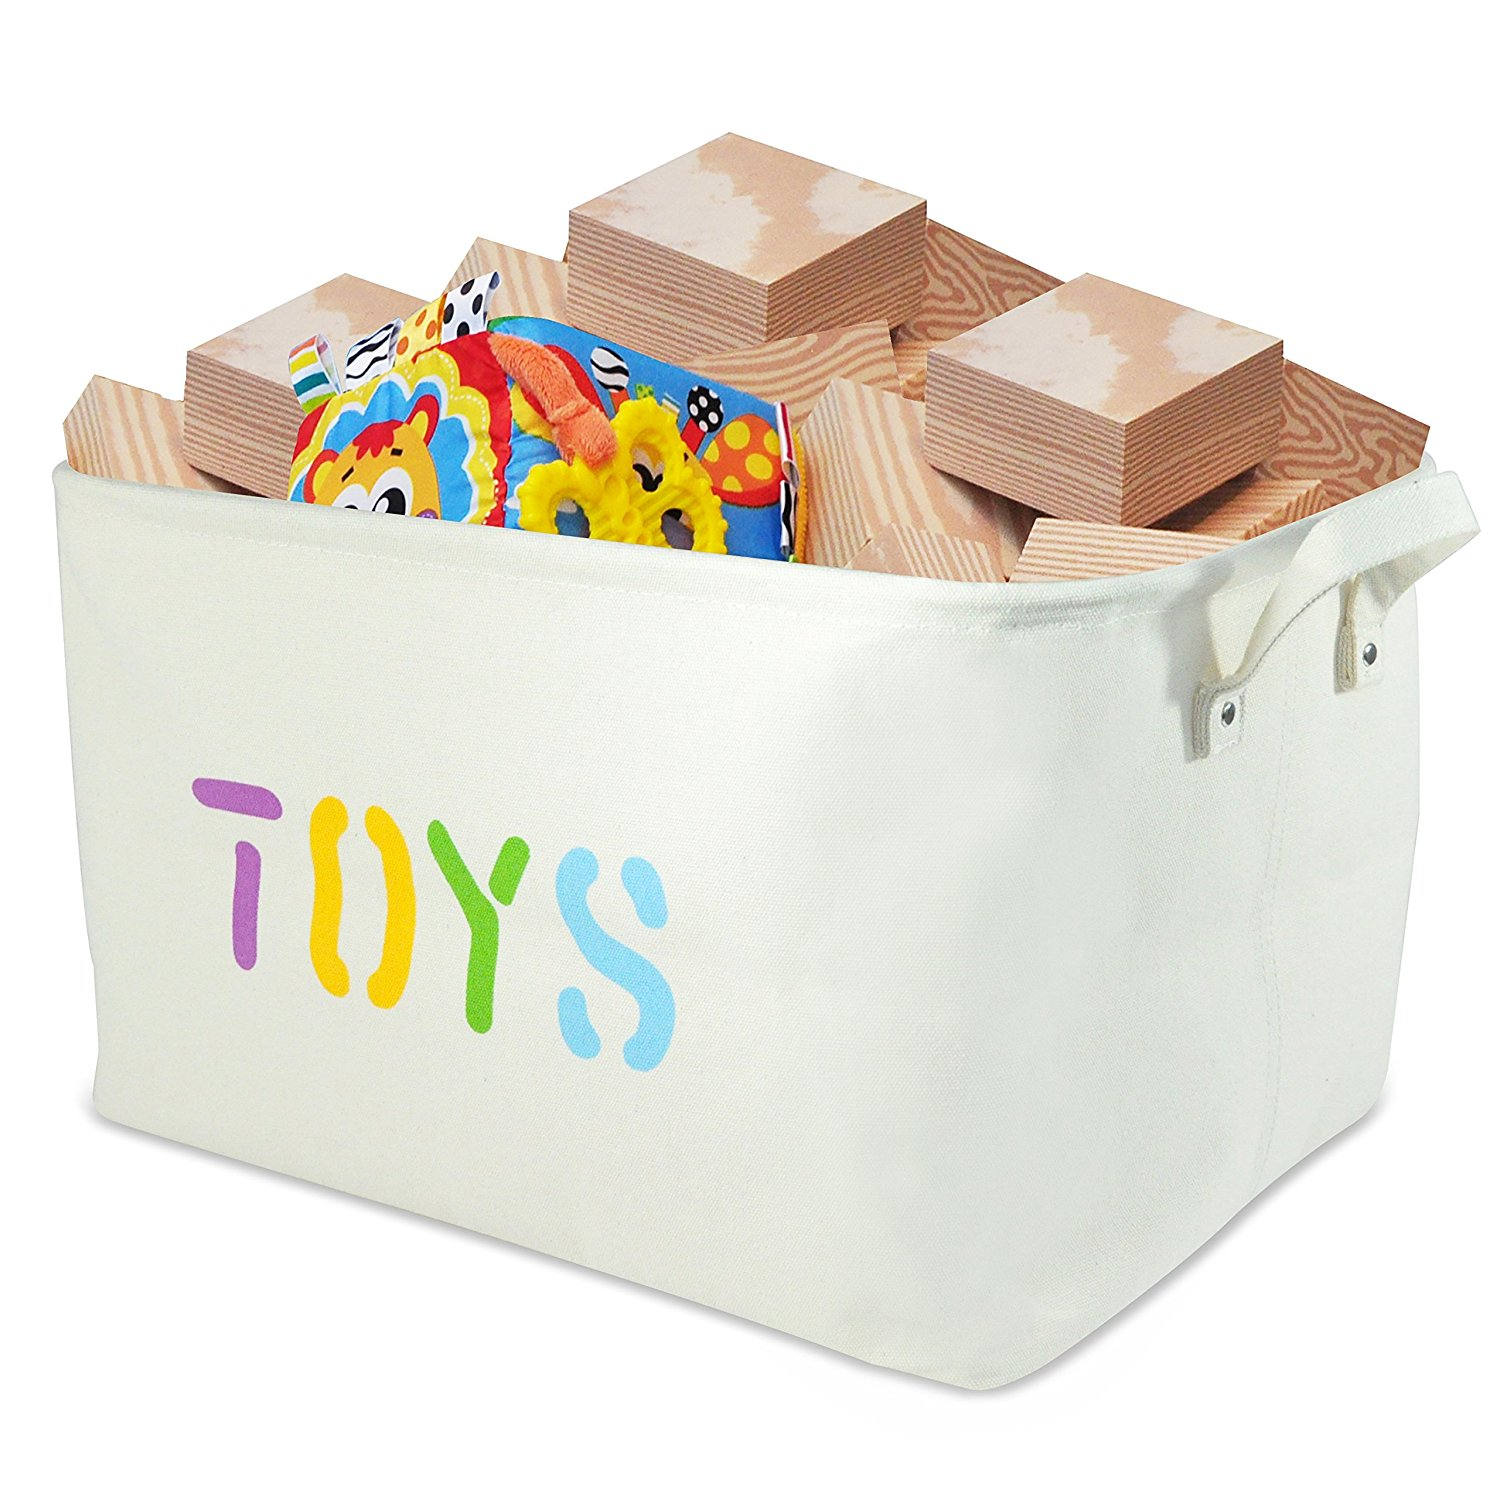 Toy Storage Baskets   20 X 14 X 10 Extra Large Basket Storage For Toys,  Kids, Pets, Laundry   Woven Fabric Basket   Heavy Duty Canvas (XL)    Walmart.com